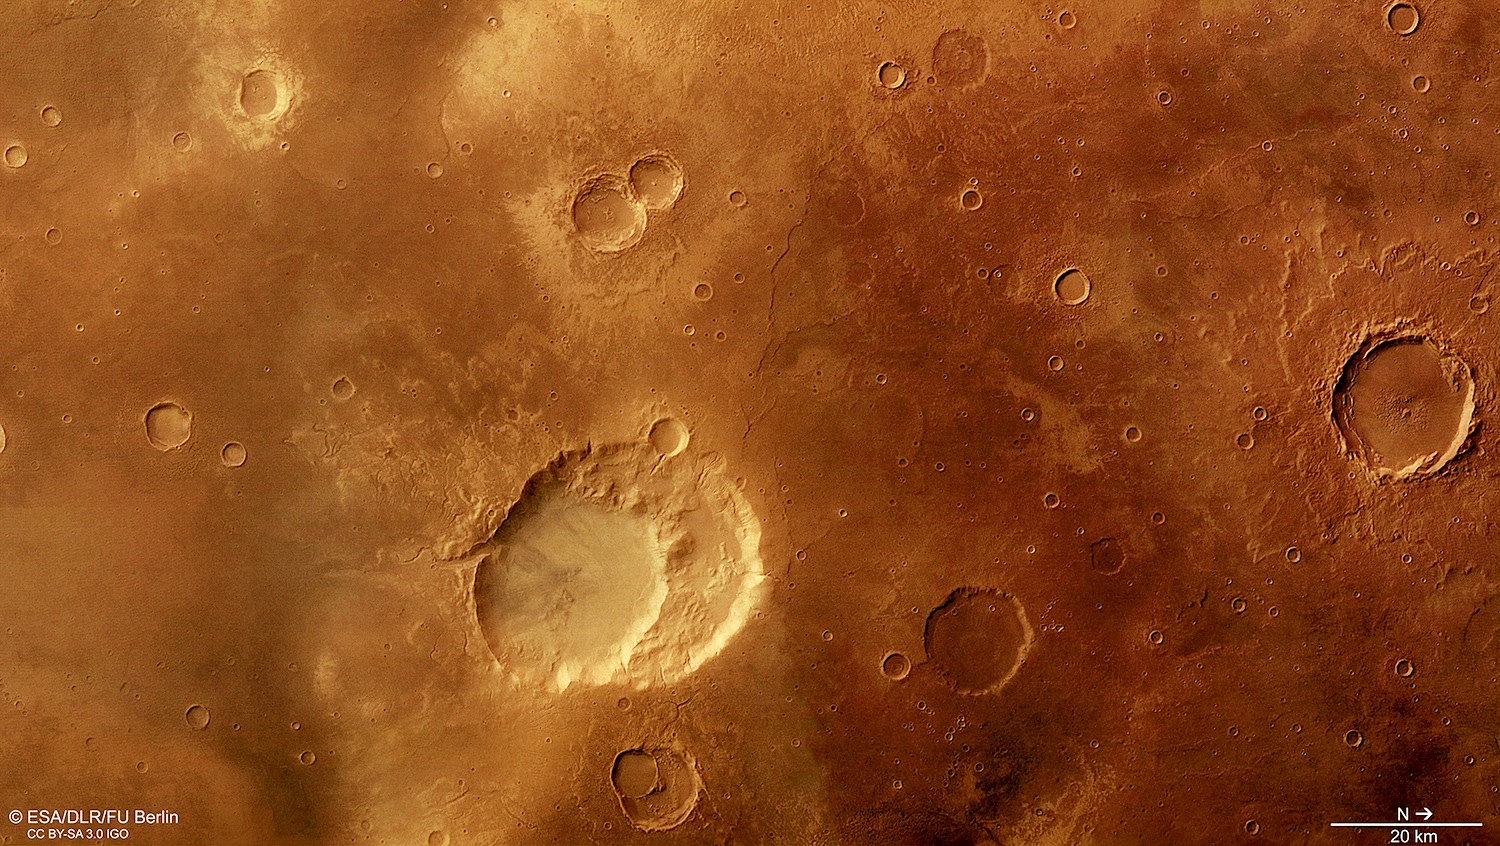 The 30 kilometer by 40 kilometer craters of Siloe Patera may be the remains of an ancient supervolcano.Similar to the supervolcano beneath Yellowstone National Park, a large volume of magma may have built up beneath the Martian surface. A massive eruption releasing more than 1000 cubic kilometers of material could explain the geology of Siloe Patera's two nested craters.  Credit:  Esa/DLR/FU Berlin   CC BY-SA 3.0 IGO